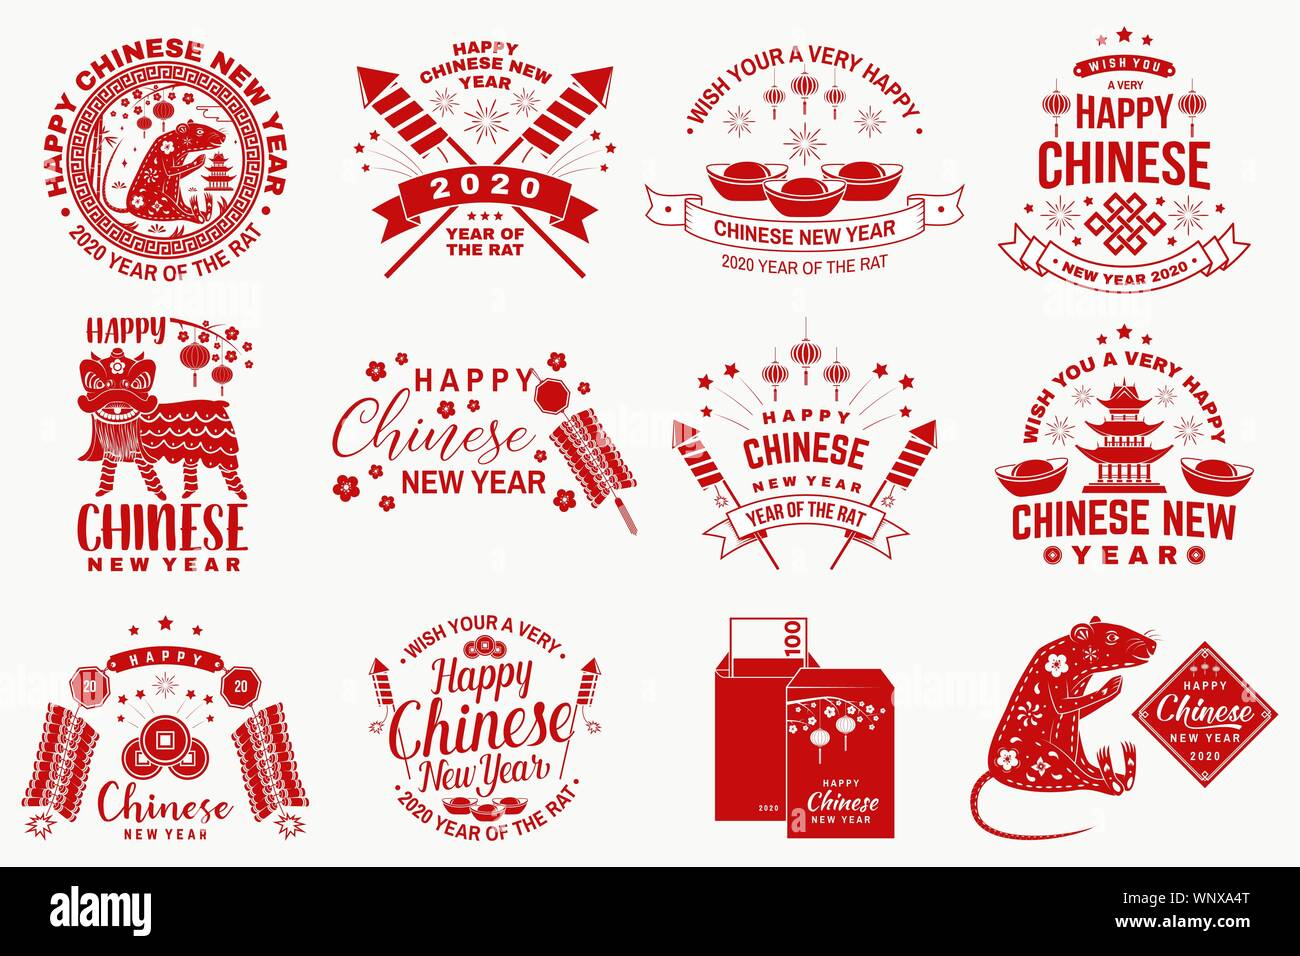 Happy Chinese New Year Design In Retro Style Chinese New Year Felicitation Classic Postcard Chinese Sign Year Of Rat Greeting Card Banner For Website Template Vector Illustration Stock Vector Image Art